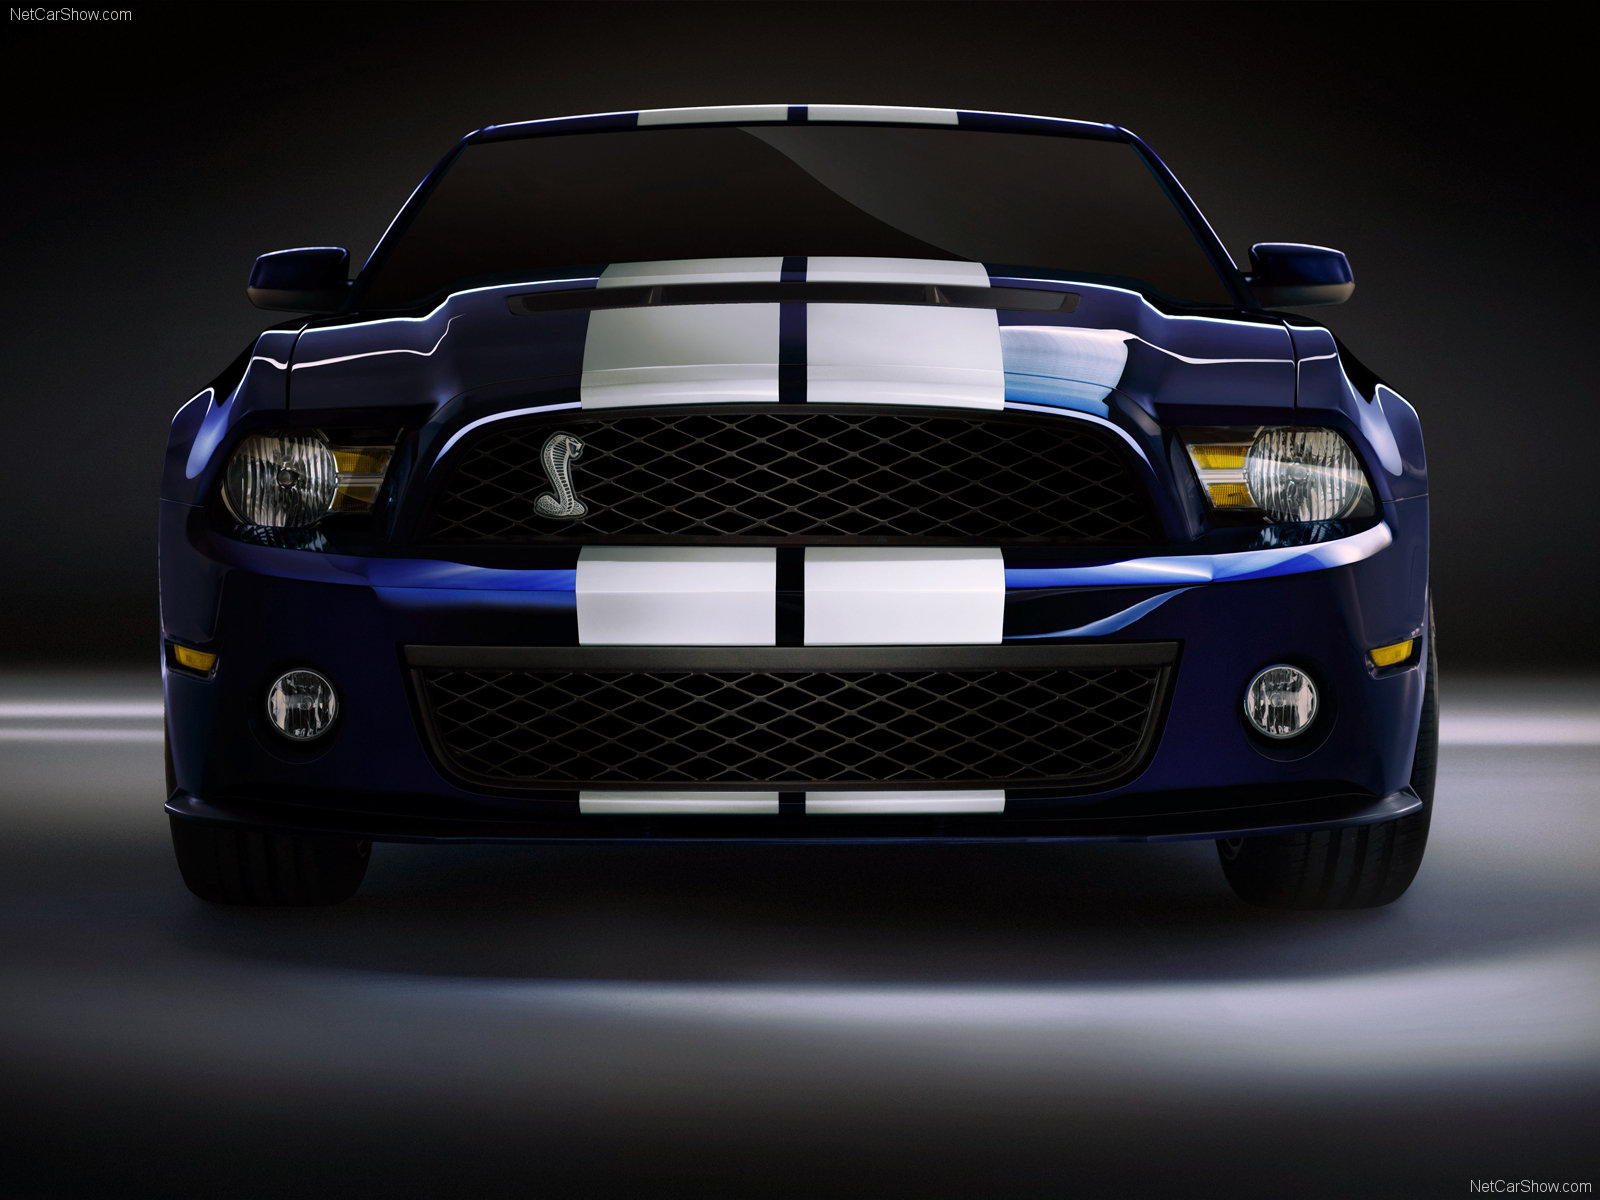 Ford Mustang Shelby GT500 photo 60621